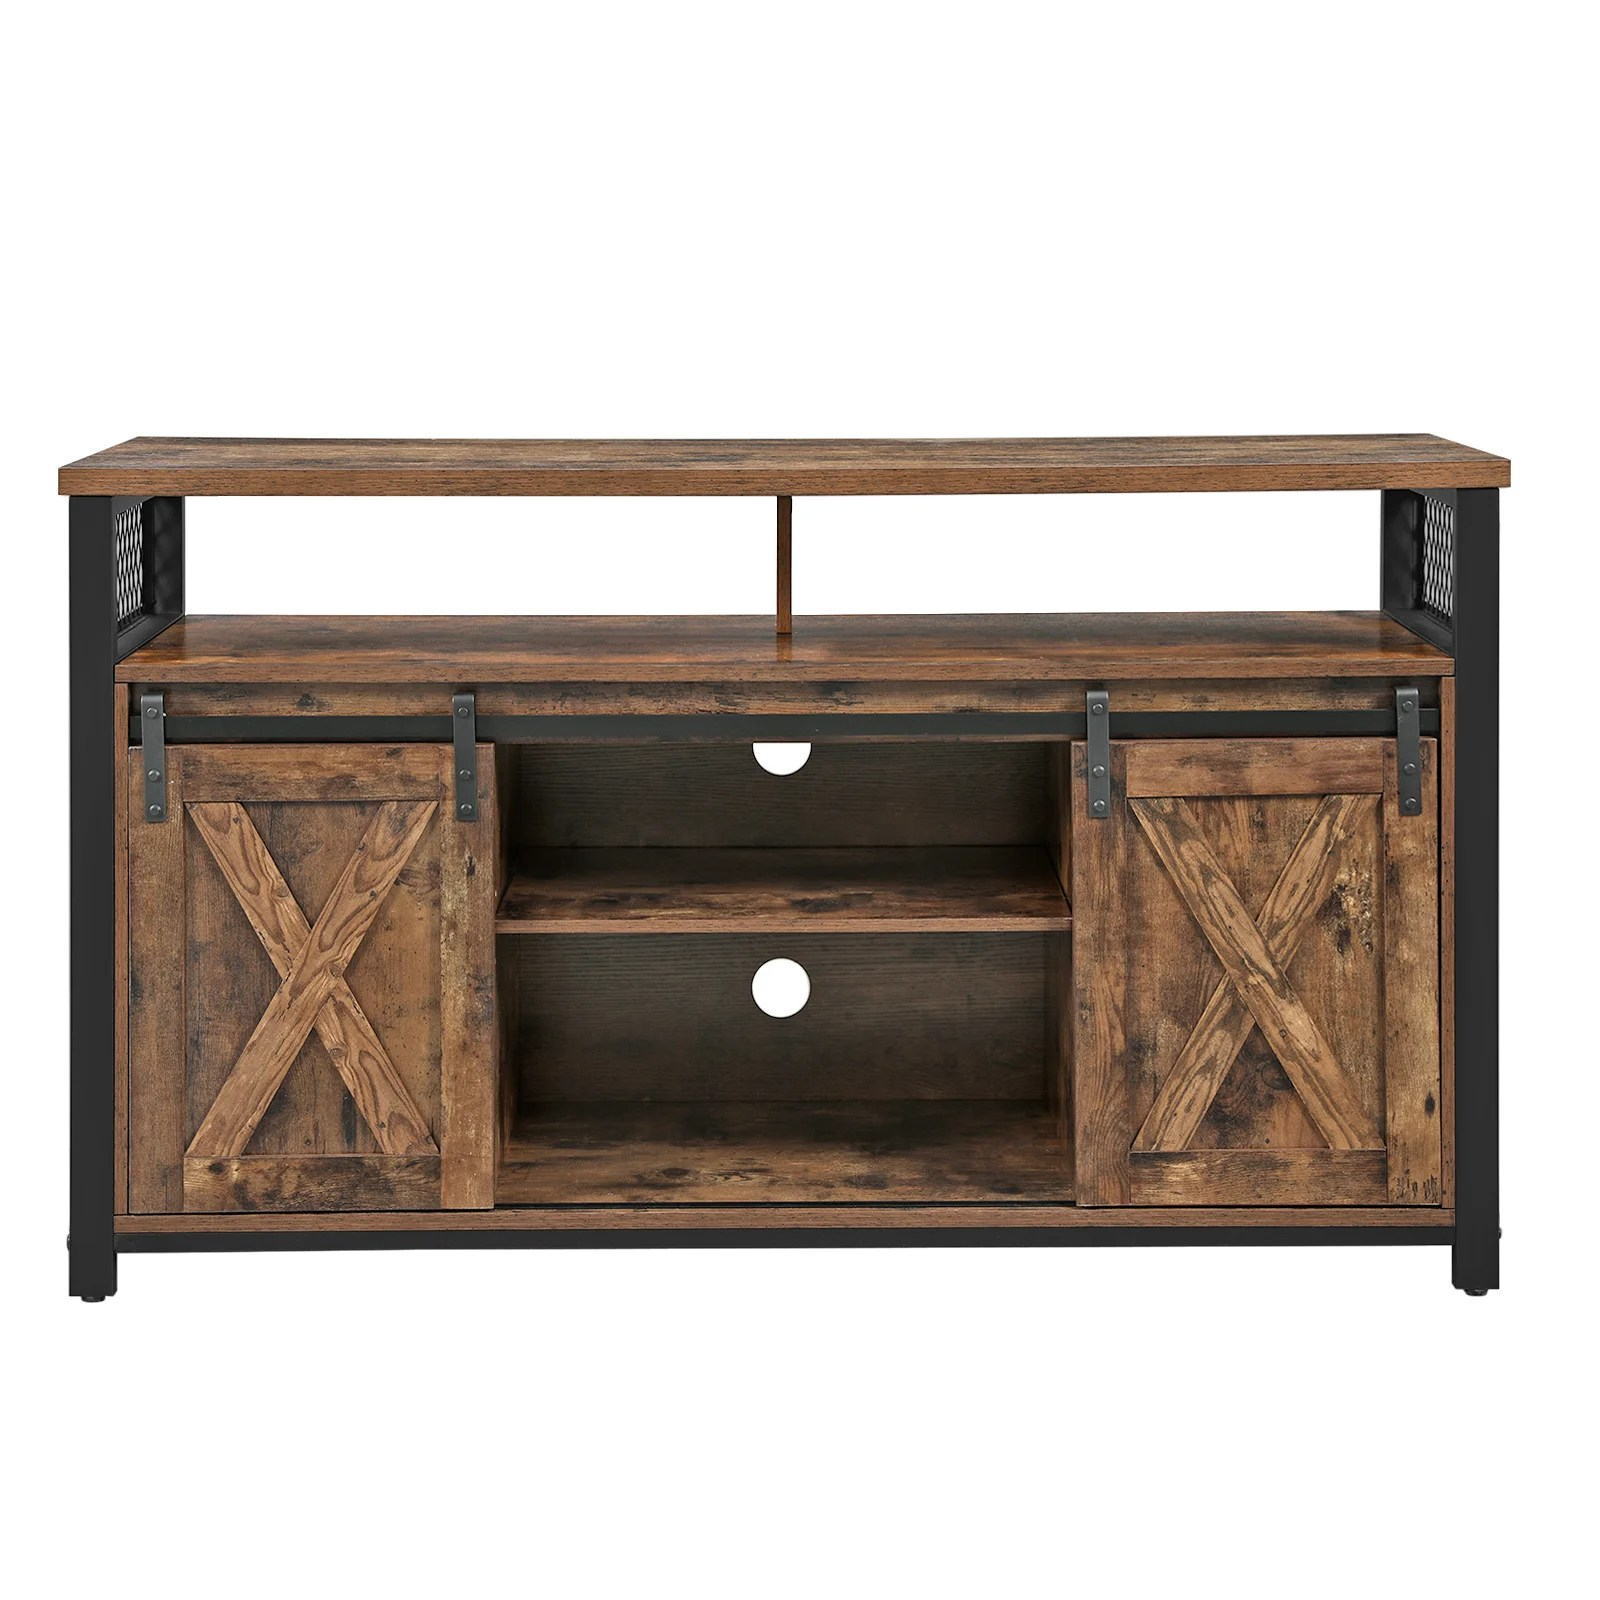 vasagle tv stand with sliding barn doors media centre and console tv cabinet with adjustable shelves for tvs up to 75 inches industrial design